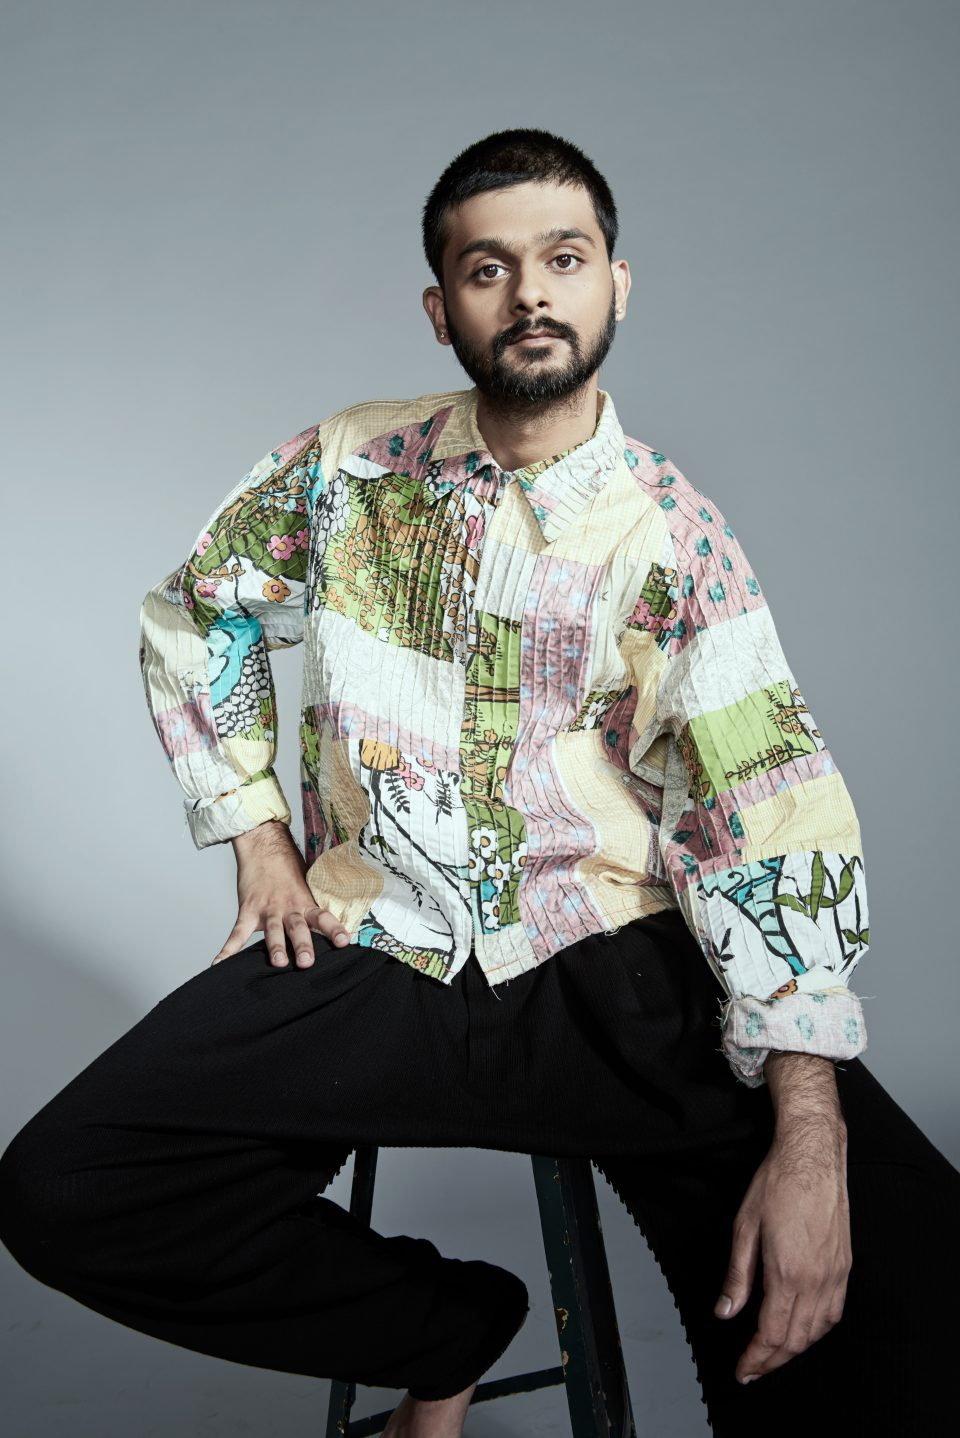 Siddharth Dhananjay is paving the way through largely uncharted terrain as a first-generation immigrant actor. Photo: Michael Becker